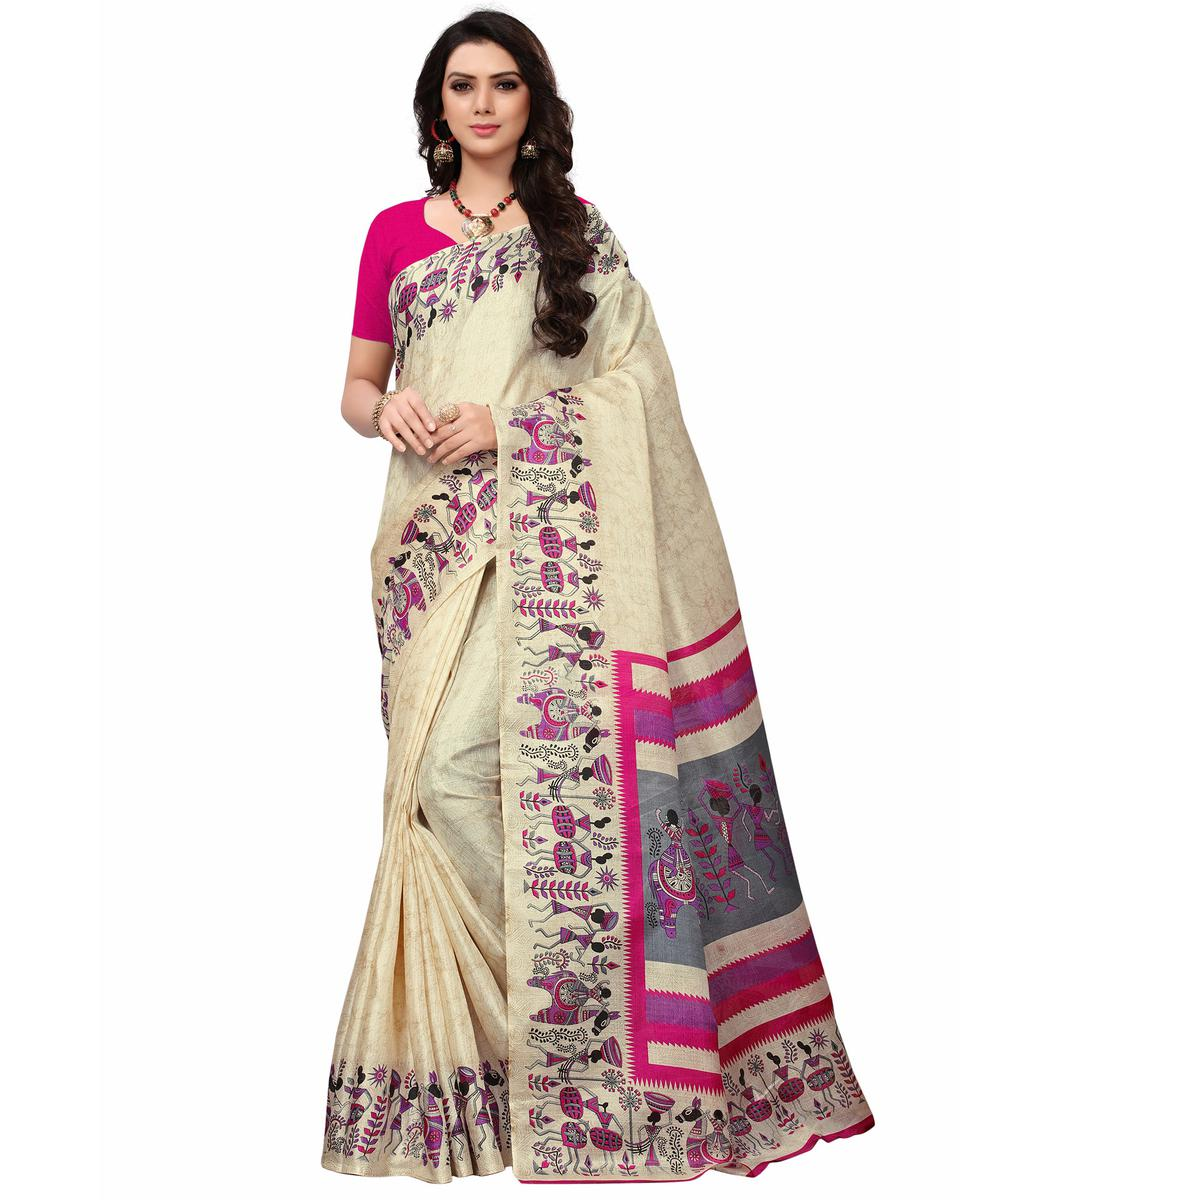 Desiring Off White-Pink Colored Festive Wear Printed Khadi Silk Saree